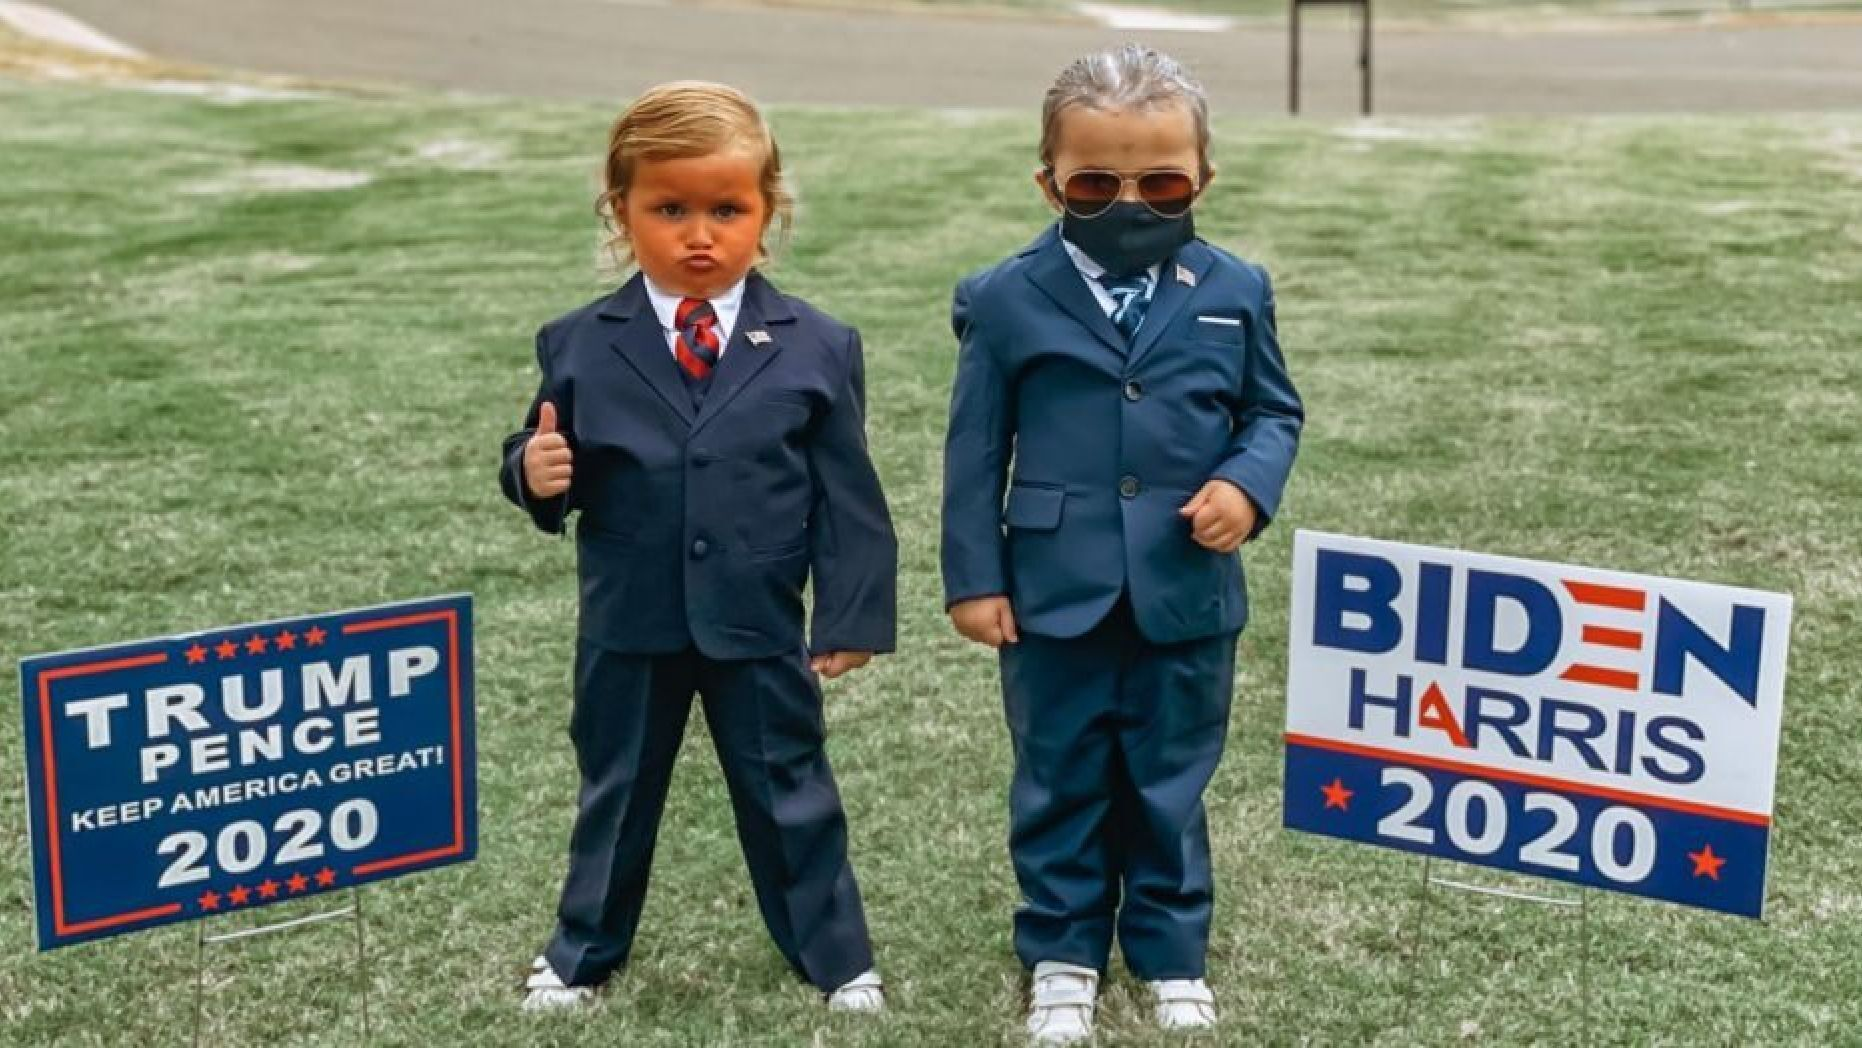 Toddlers dressed as candidates